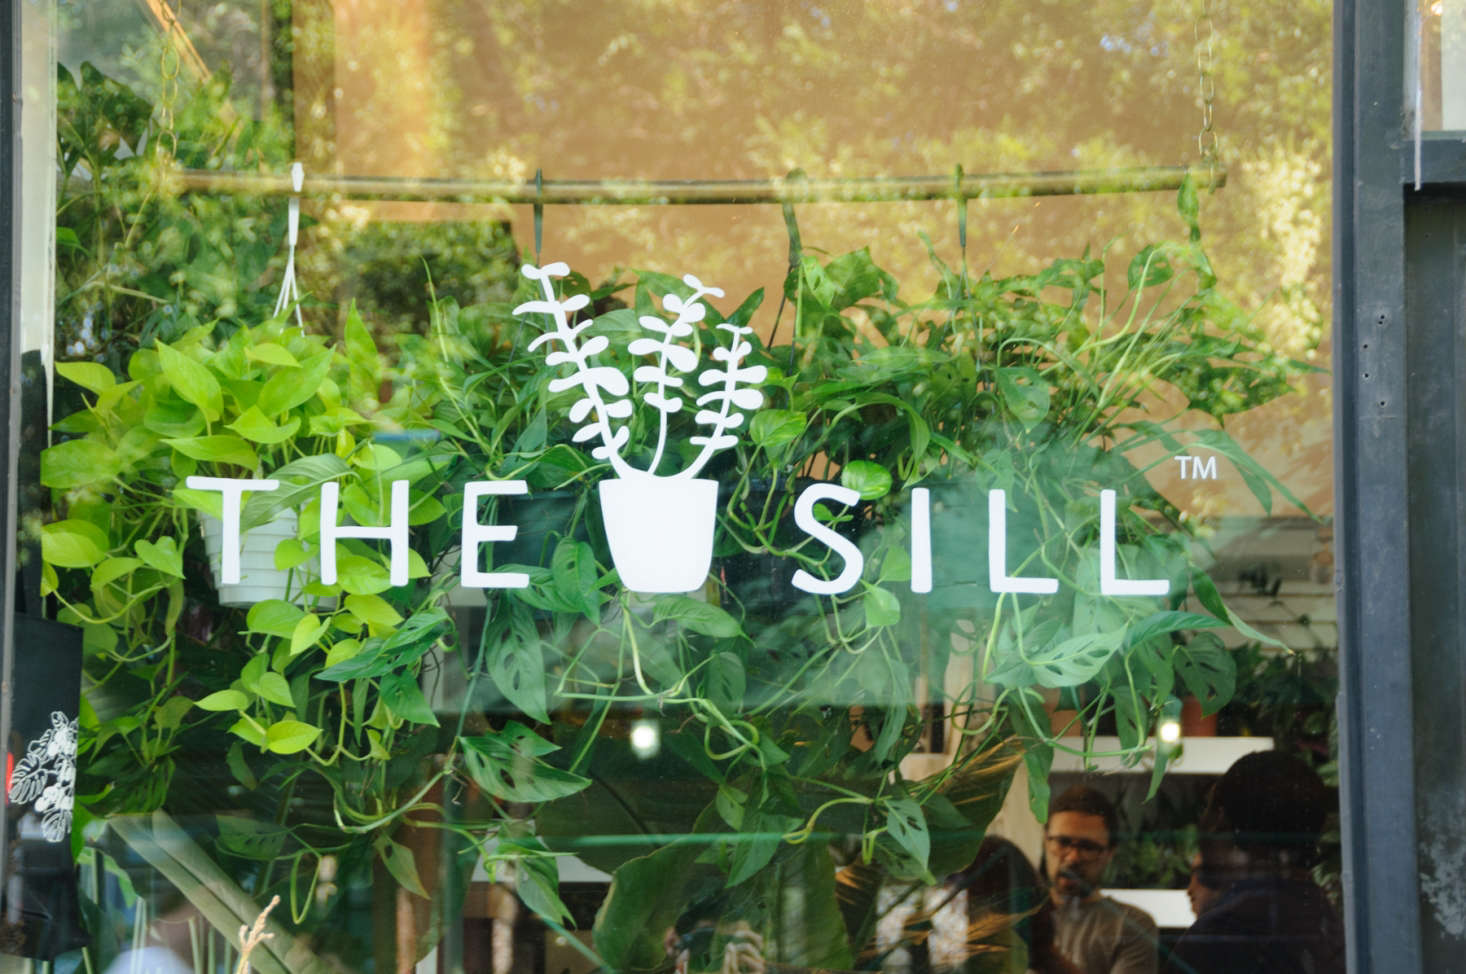 In addition to potted plant deliveries, The Sill provides plant design and maintenance services to companies in NYC and LA. Blank plans to next offer balcony and window box plants.